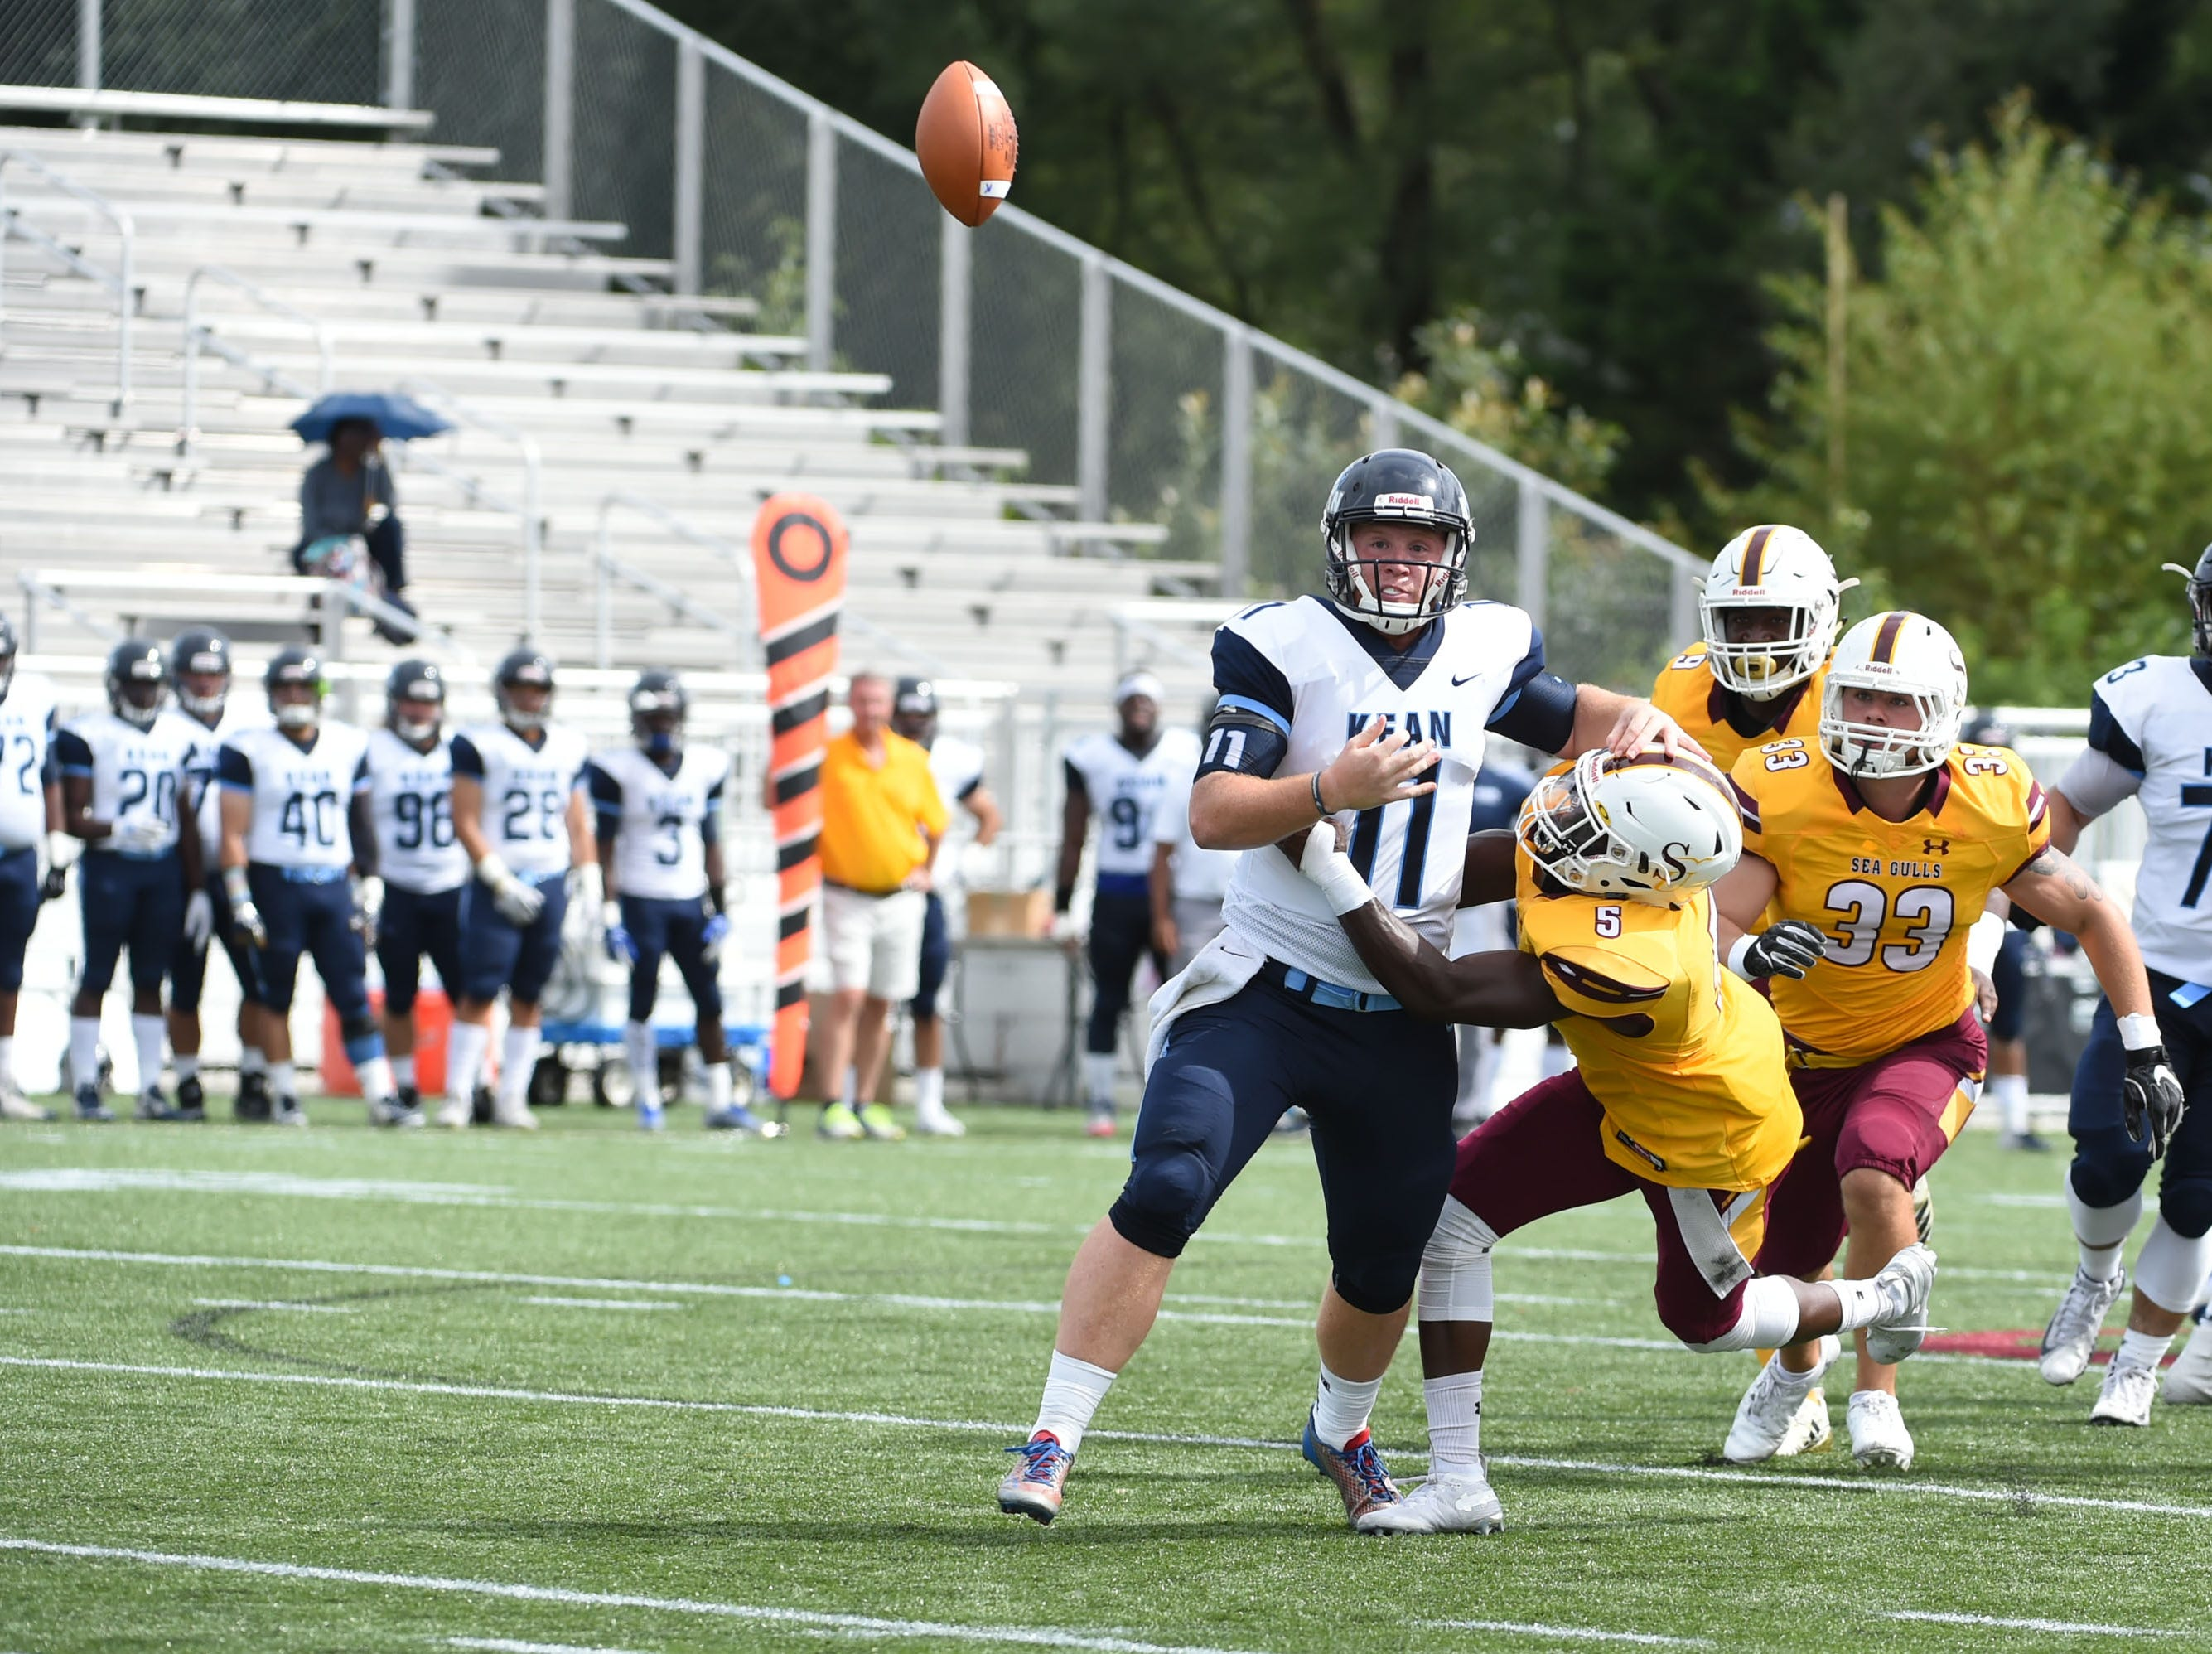 Salisbury's Matthew McFarland knocks the ball out of the hands of the Kean quarter back on Saturday, Sept. 15, 2018 at Seagull Stadium.